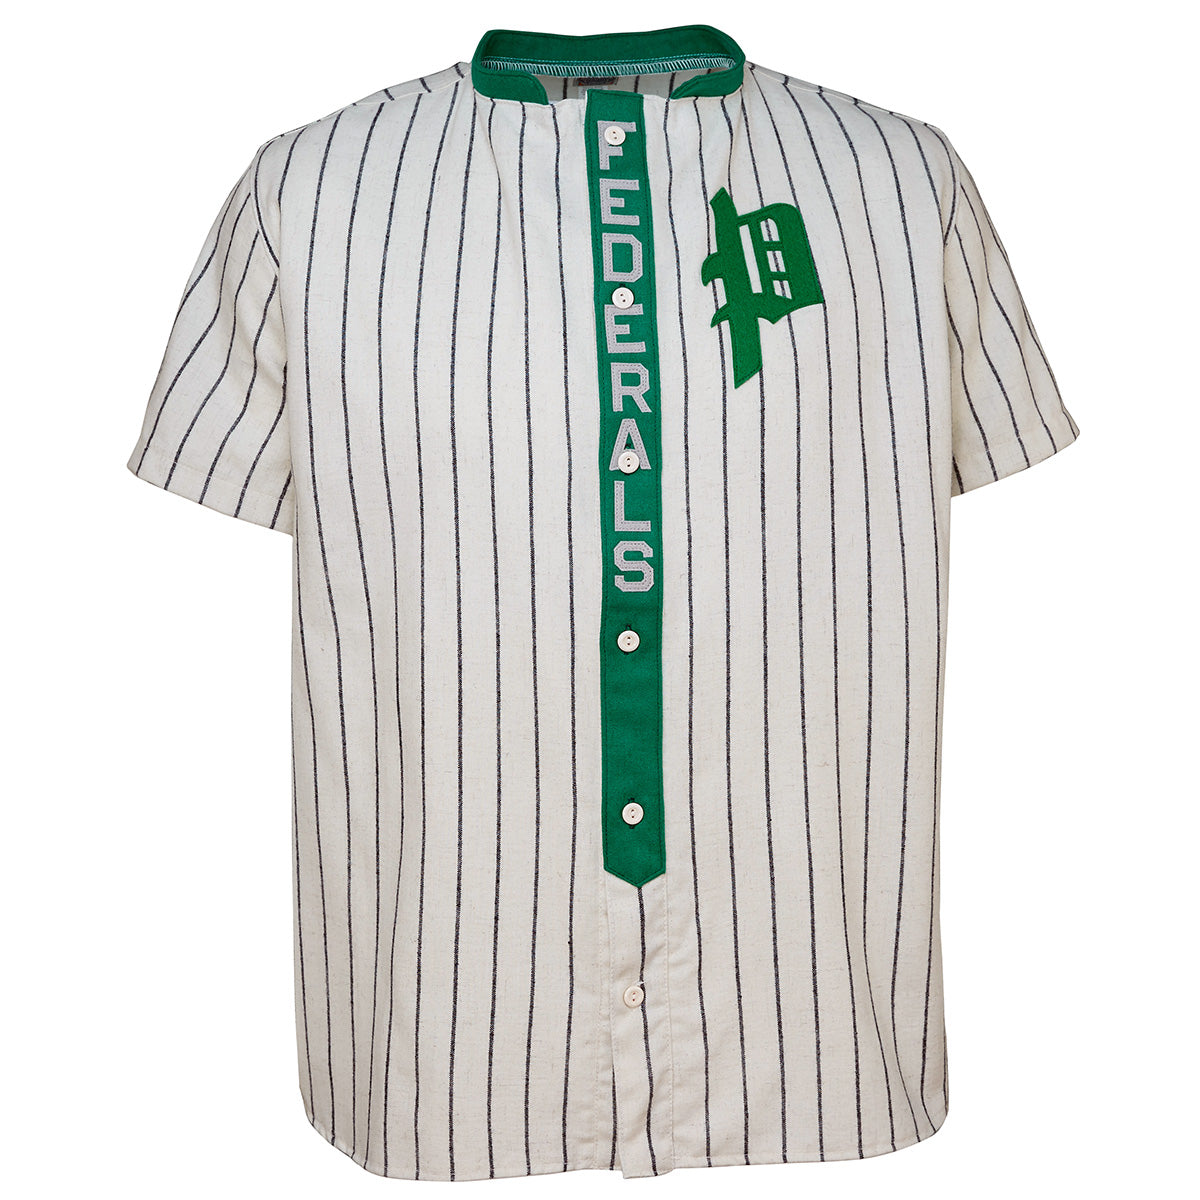 Pittsburgh Rebels 1913 Home Jersey